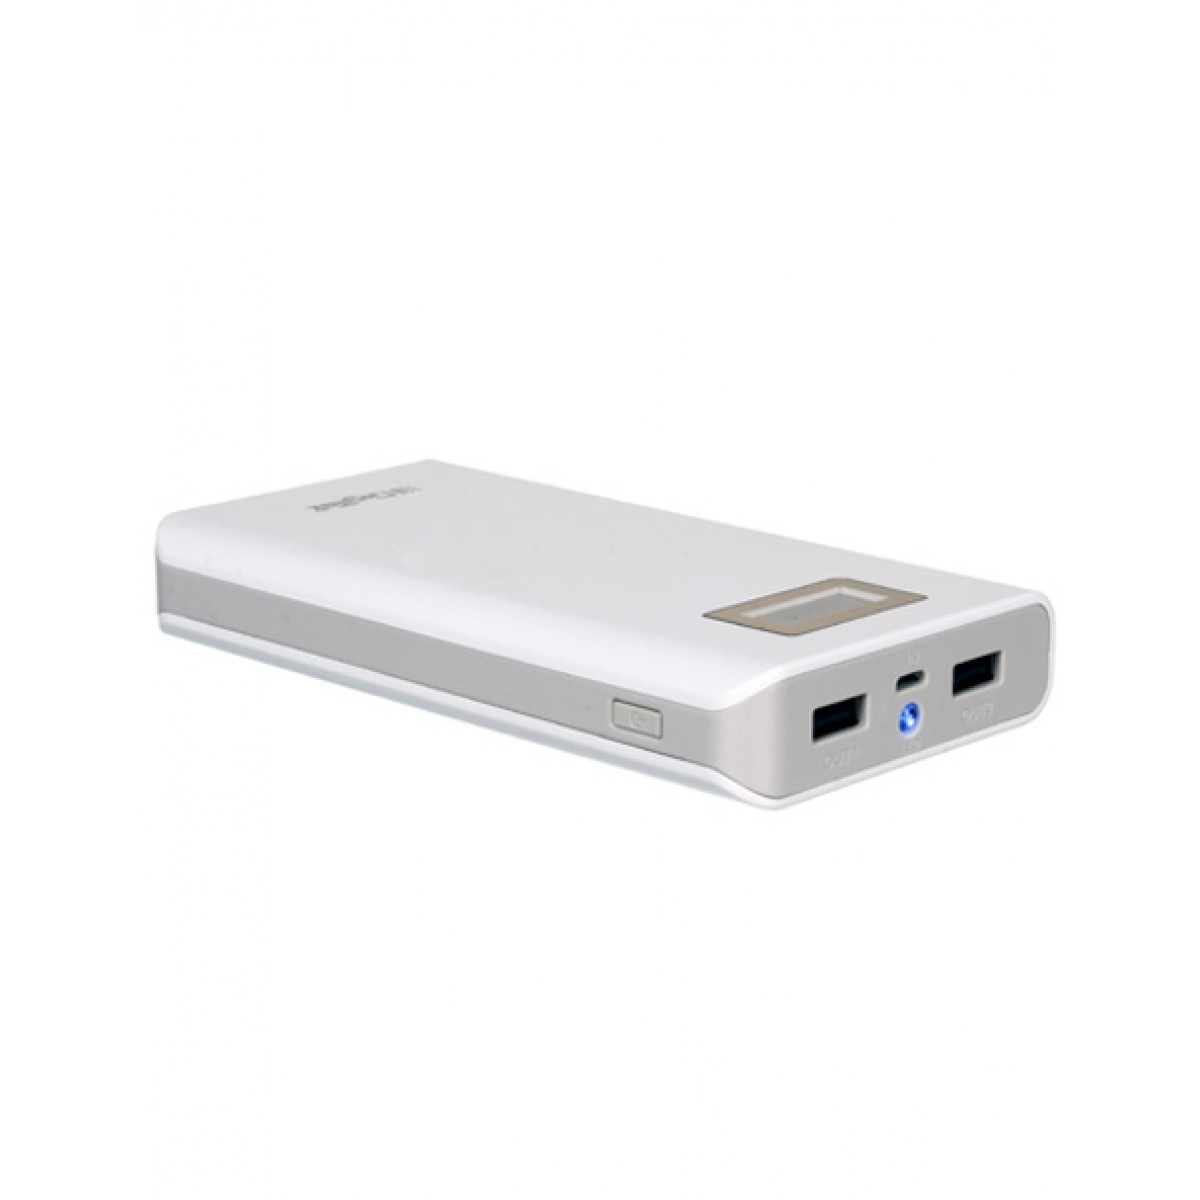 Digitek Instant Power Bank 15600mAh LCD display ...